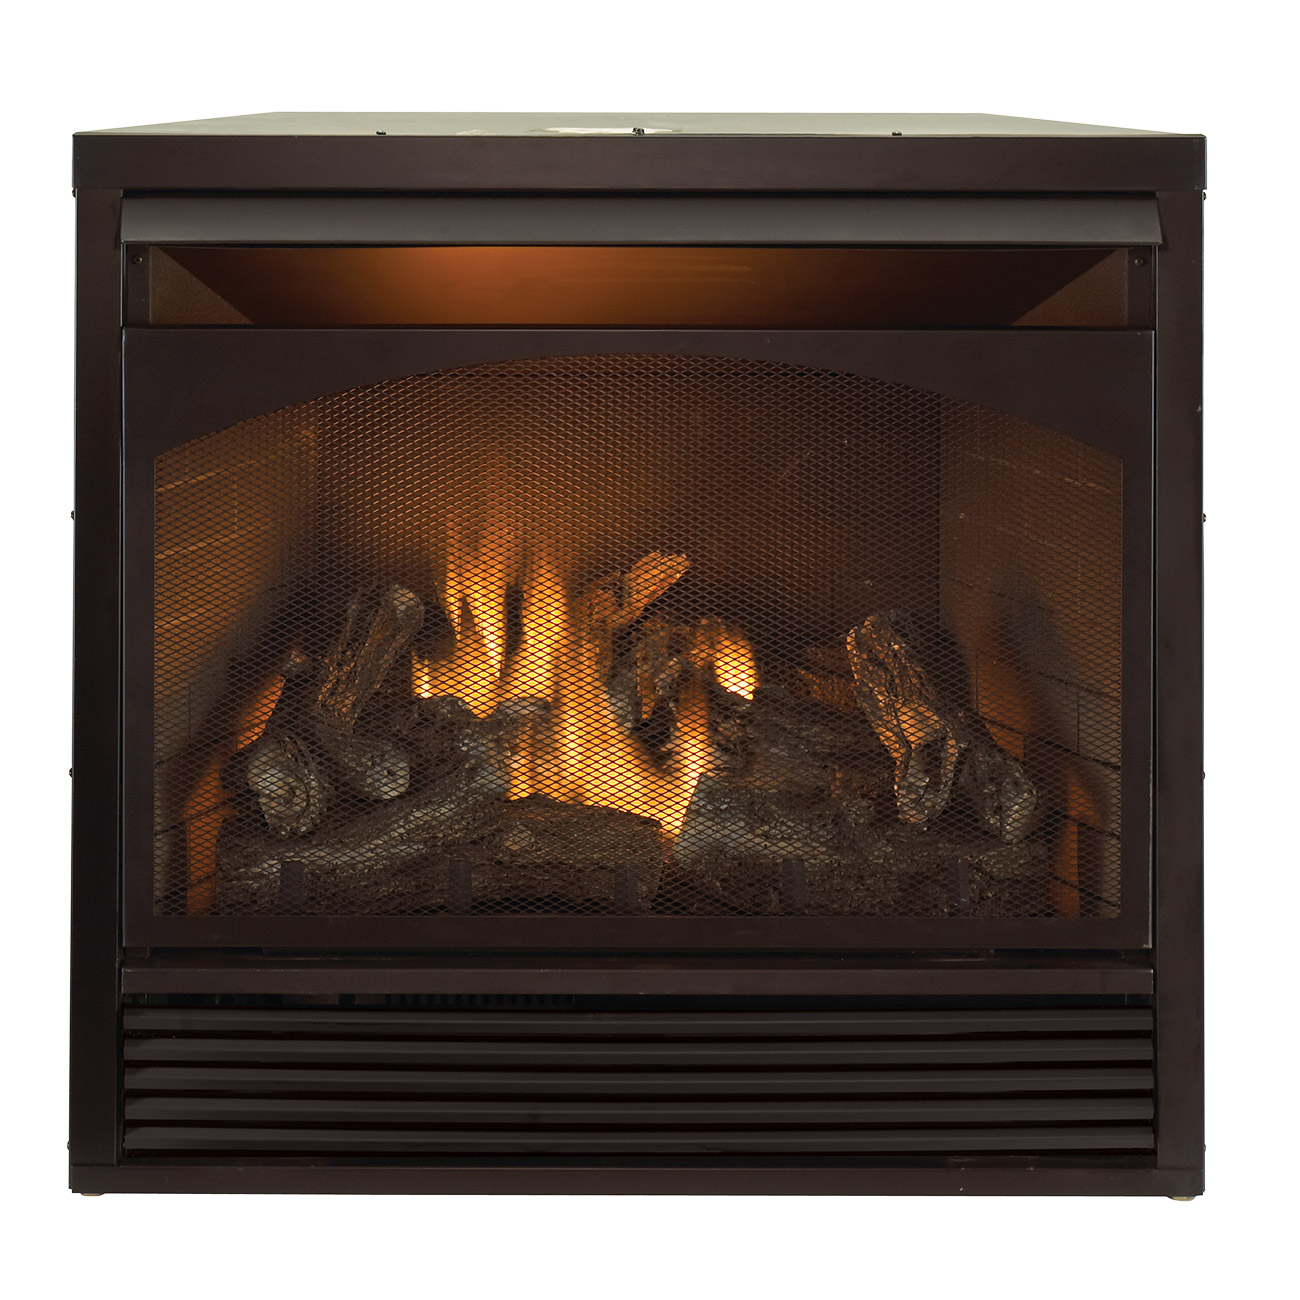 Ventless Fireplace Insert Model Fbd32rt Procom Heating